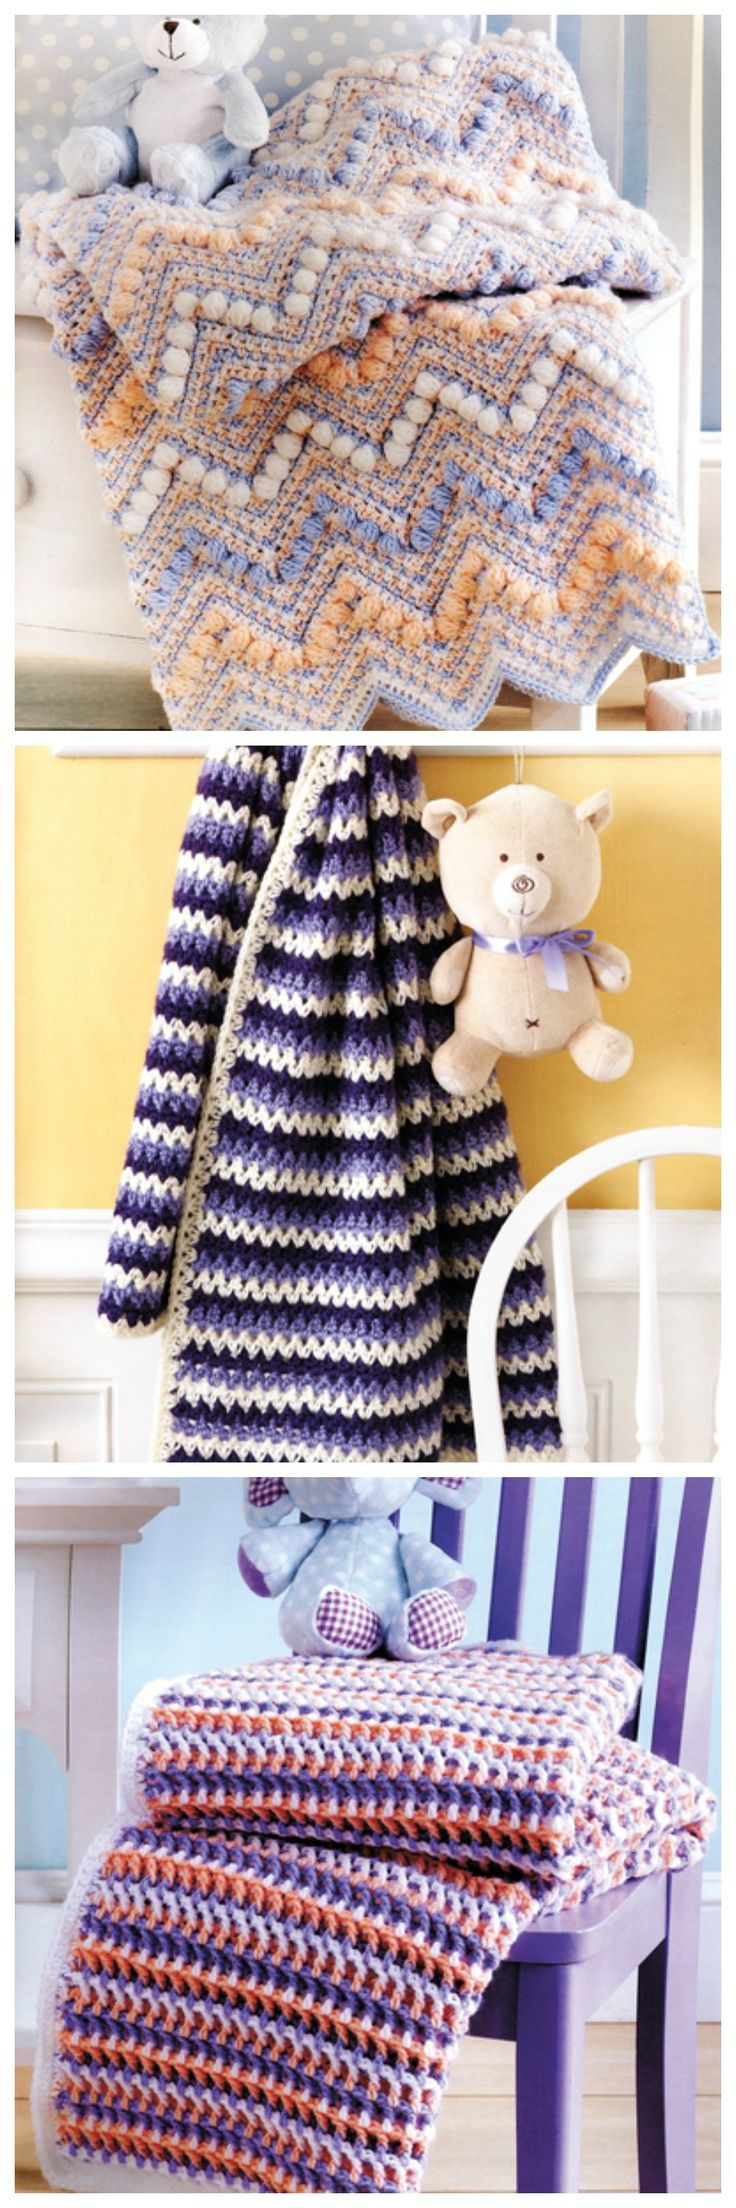 34 Best Images About Crochet Baby Blanket Patterns On